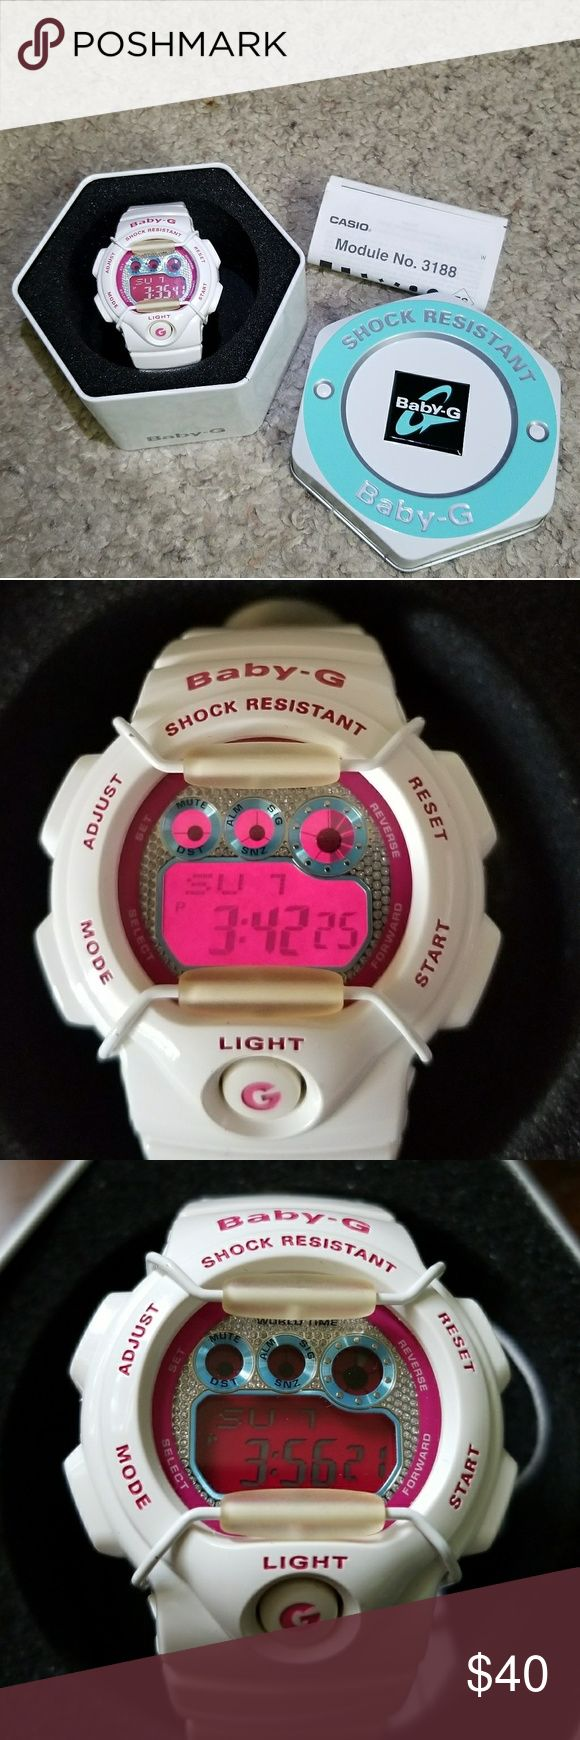 Baby G-shock For sale a used but in good condition casio Baby G-shock, it includes box and user's guide. G-Shock Accessories Watches